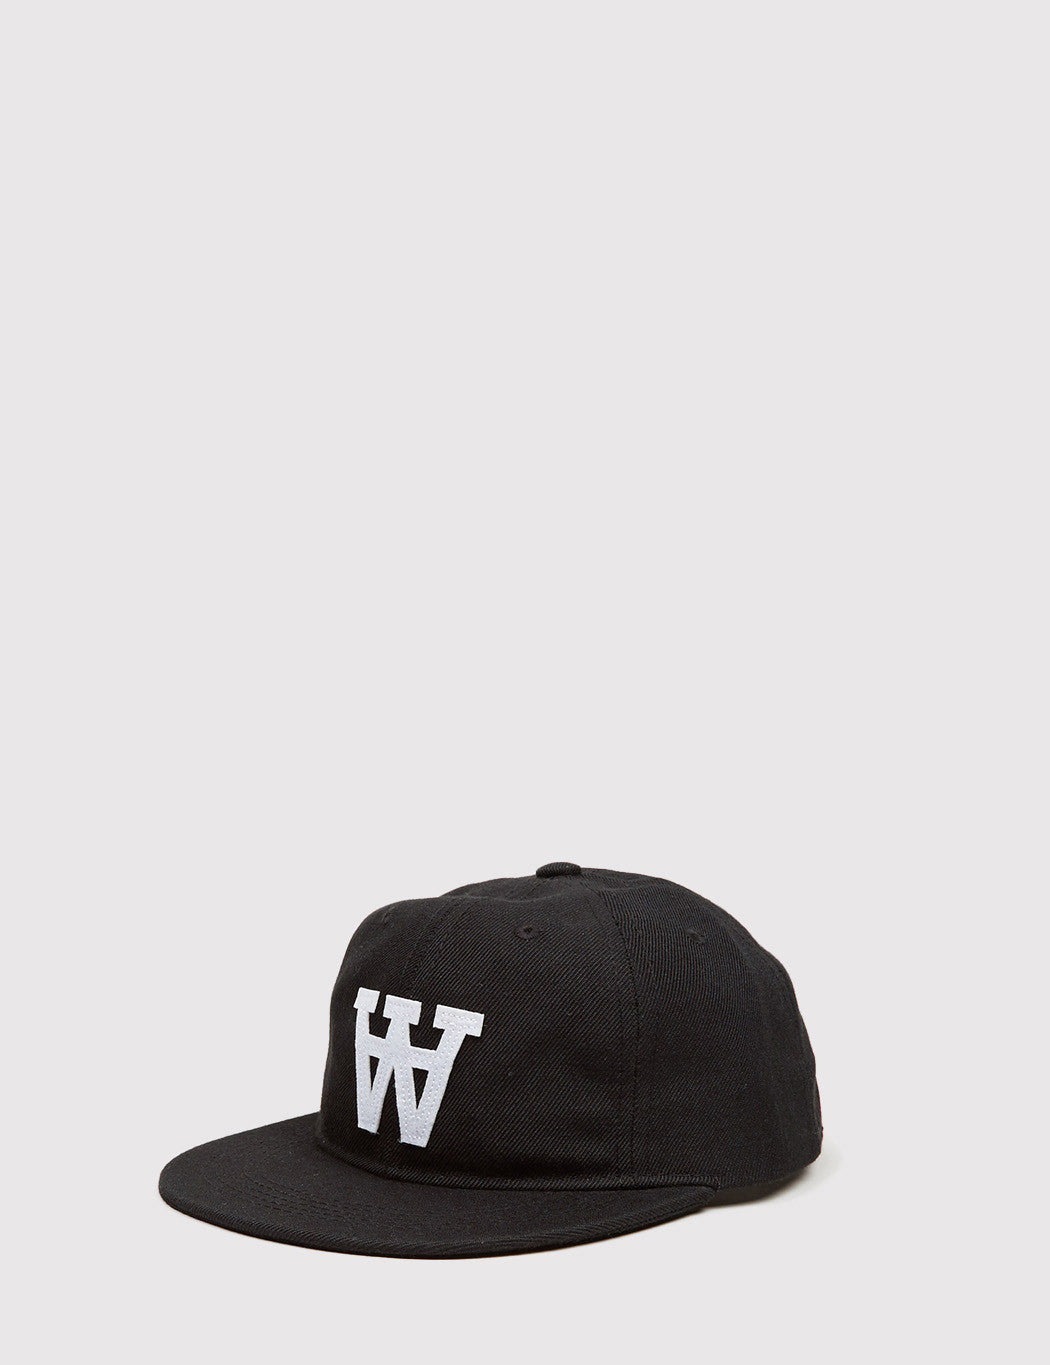 Wood Wood Baseball Cap - Black